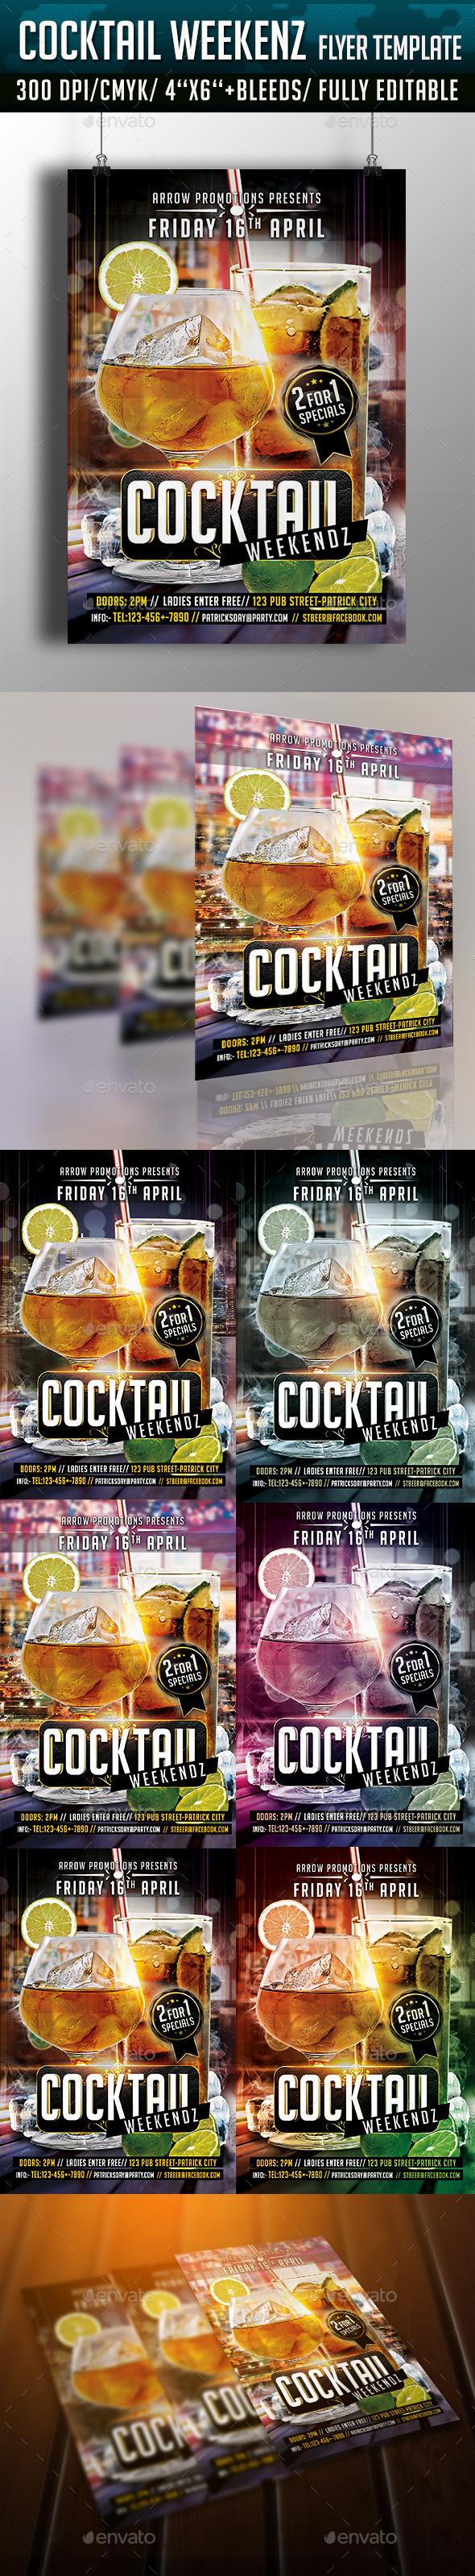 GraphicRiver Cocktail Weekends Flyer Template 10771422